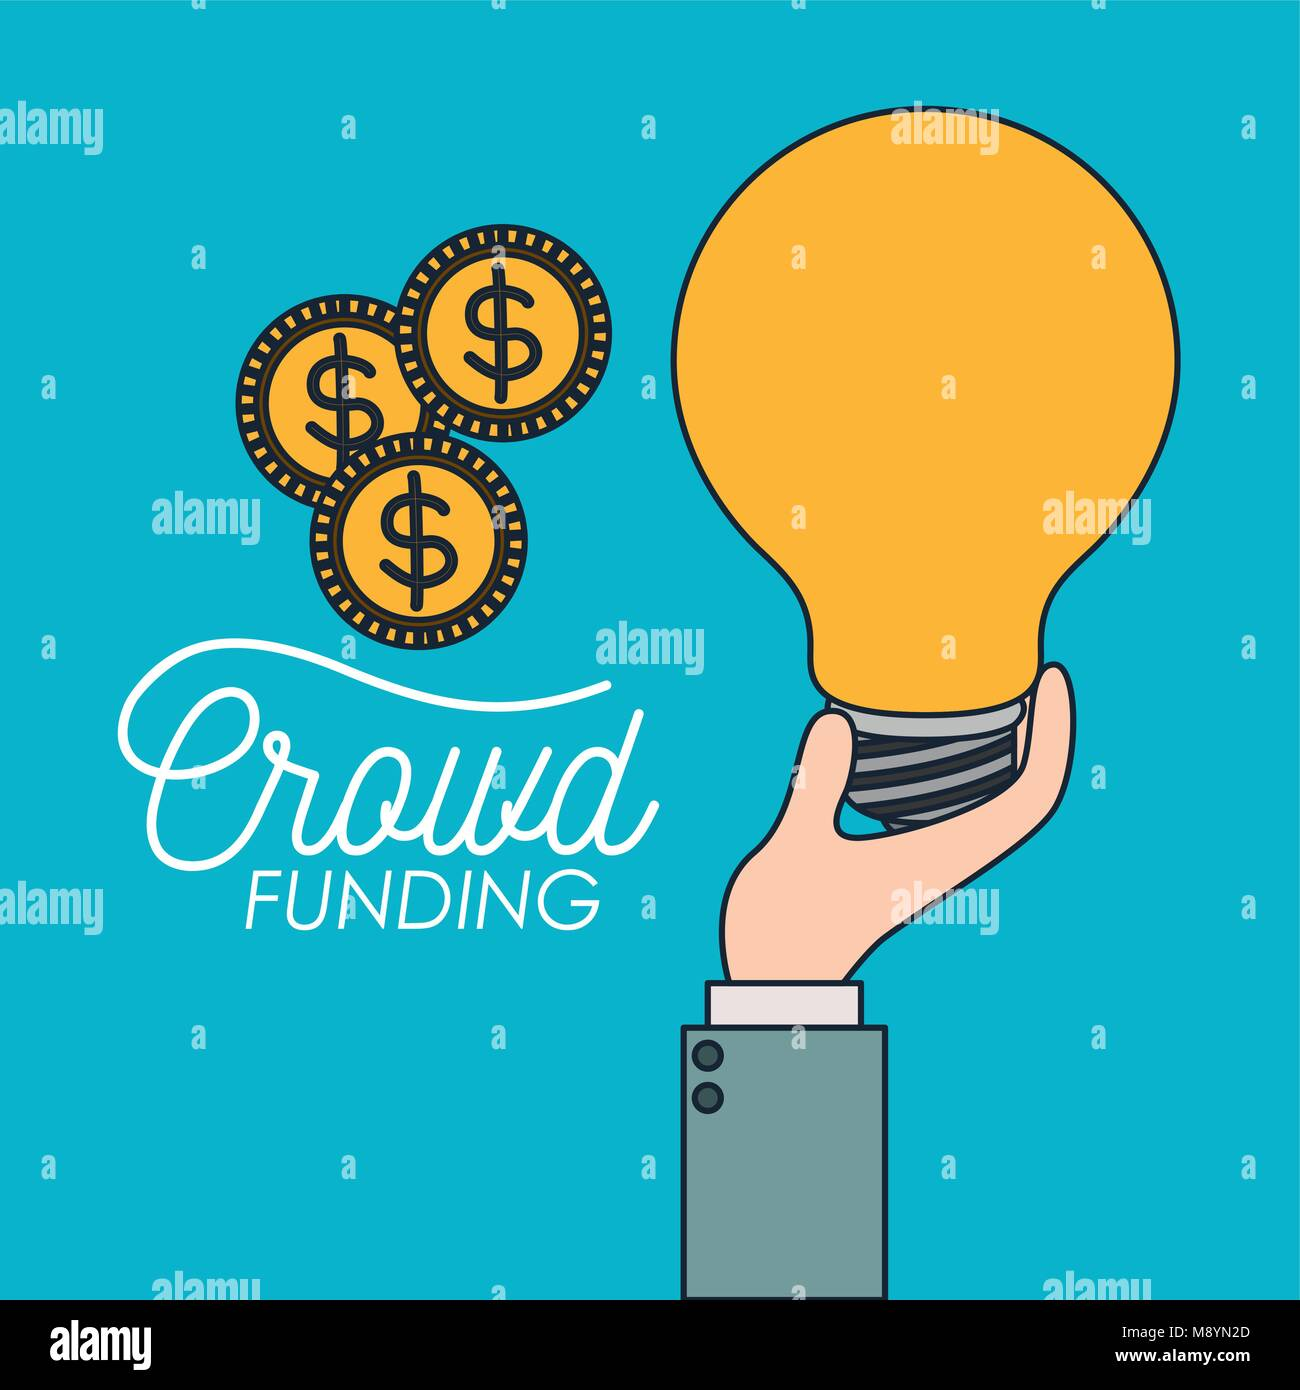 crowd funding poster of hand with big light bulb and coins in blue background - Stock Image